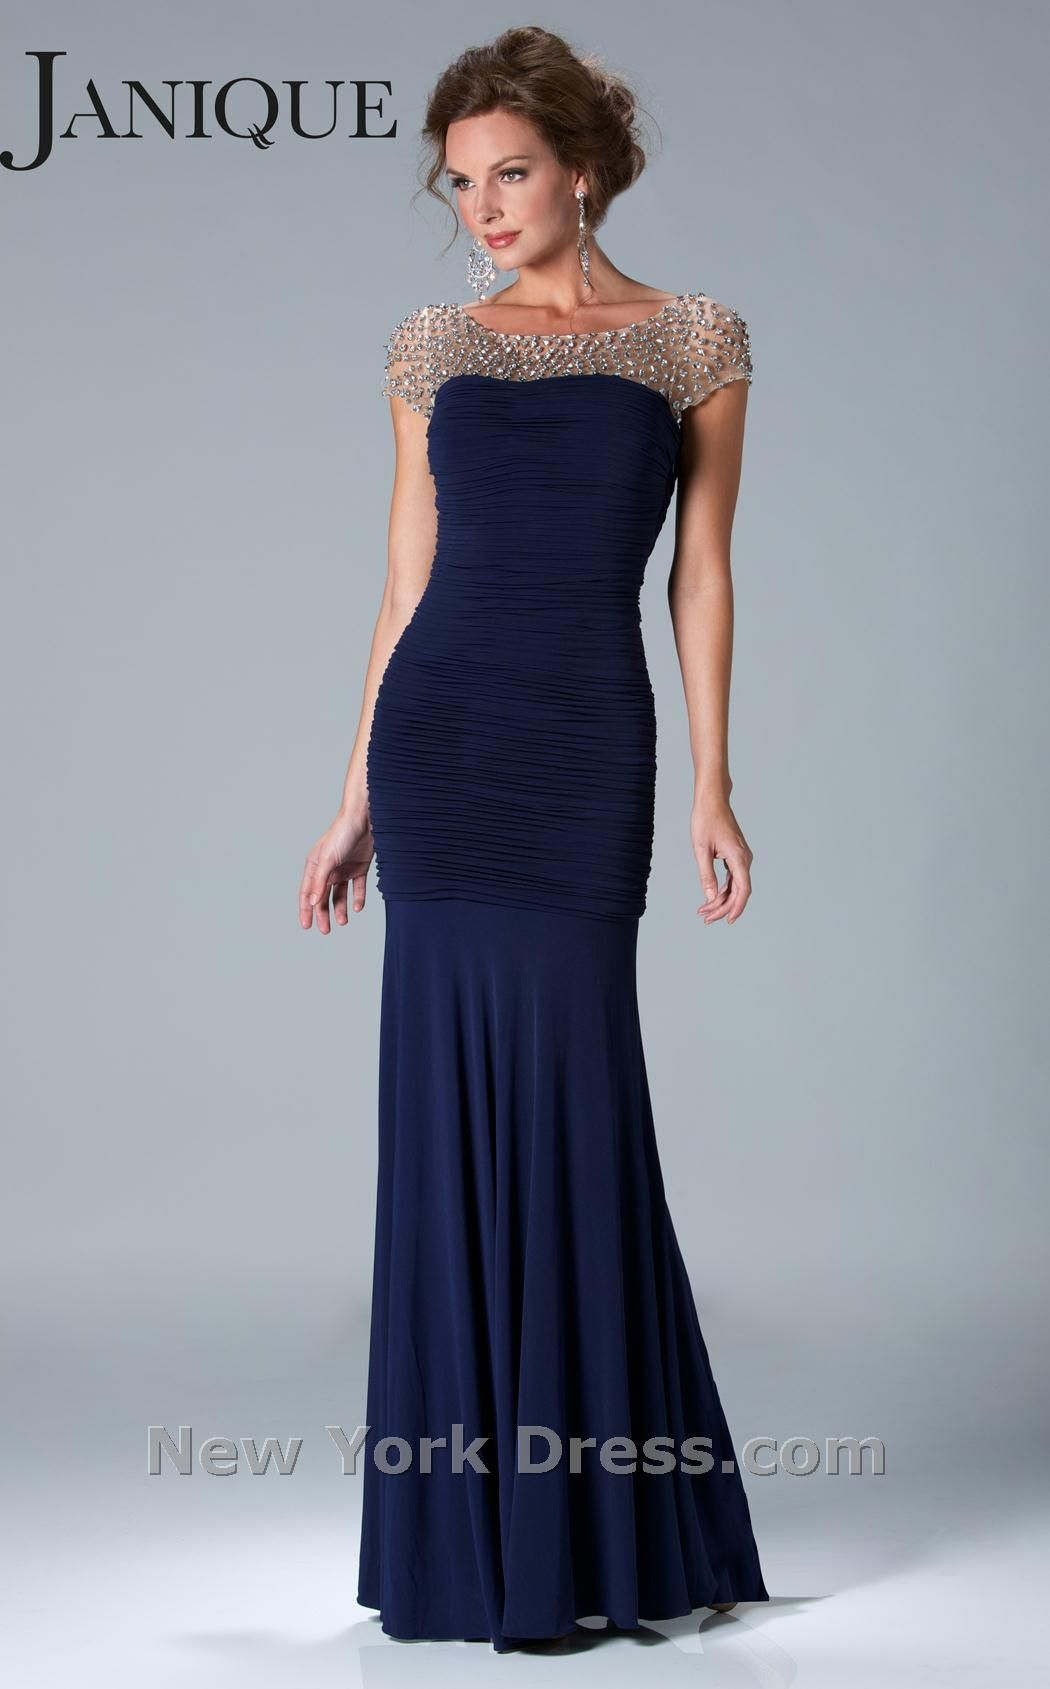 Janique Dress K6037 | Midnight blue, Sleeve and Gowns